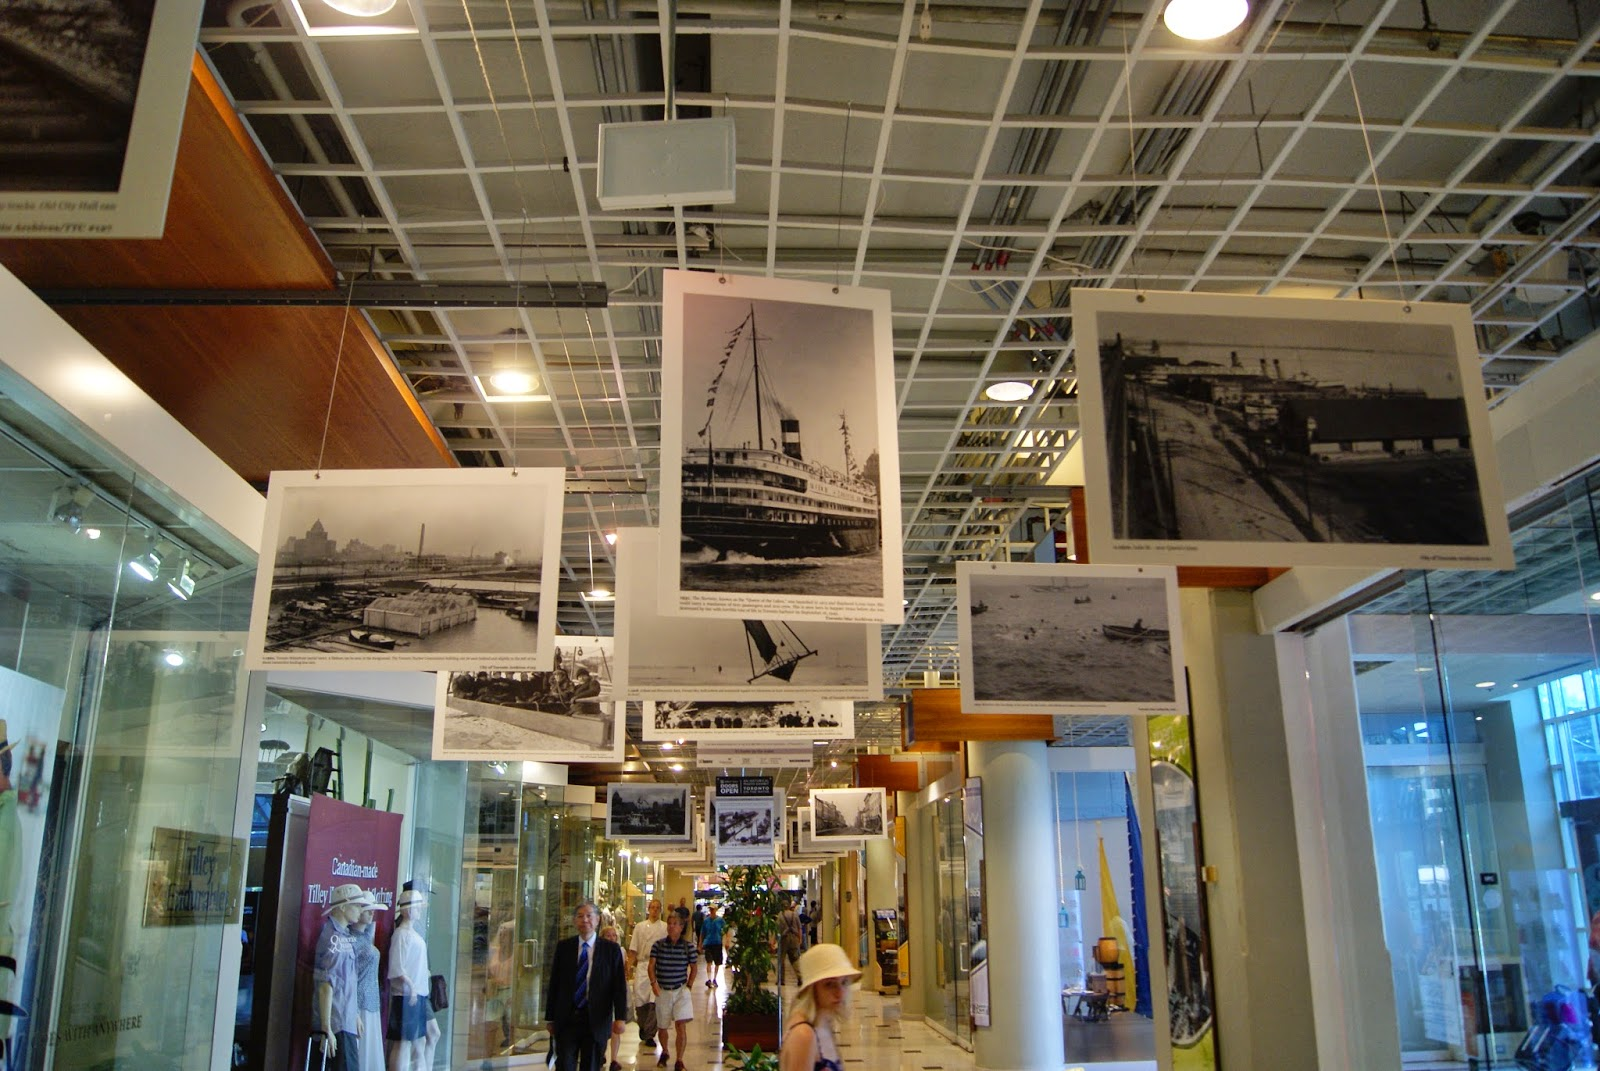 Toronto On The Water, Queens Quay Terminal Building, Museum of Inuit Art: Matchbox: A Retrospective, Culture, Arctic, Native, Toronto, Canada, Canadian Artist, Gallery, The Purple Scarf, Melanie.Ps, Photography, history, archival, waterfront